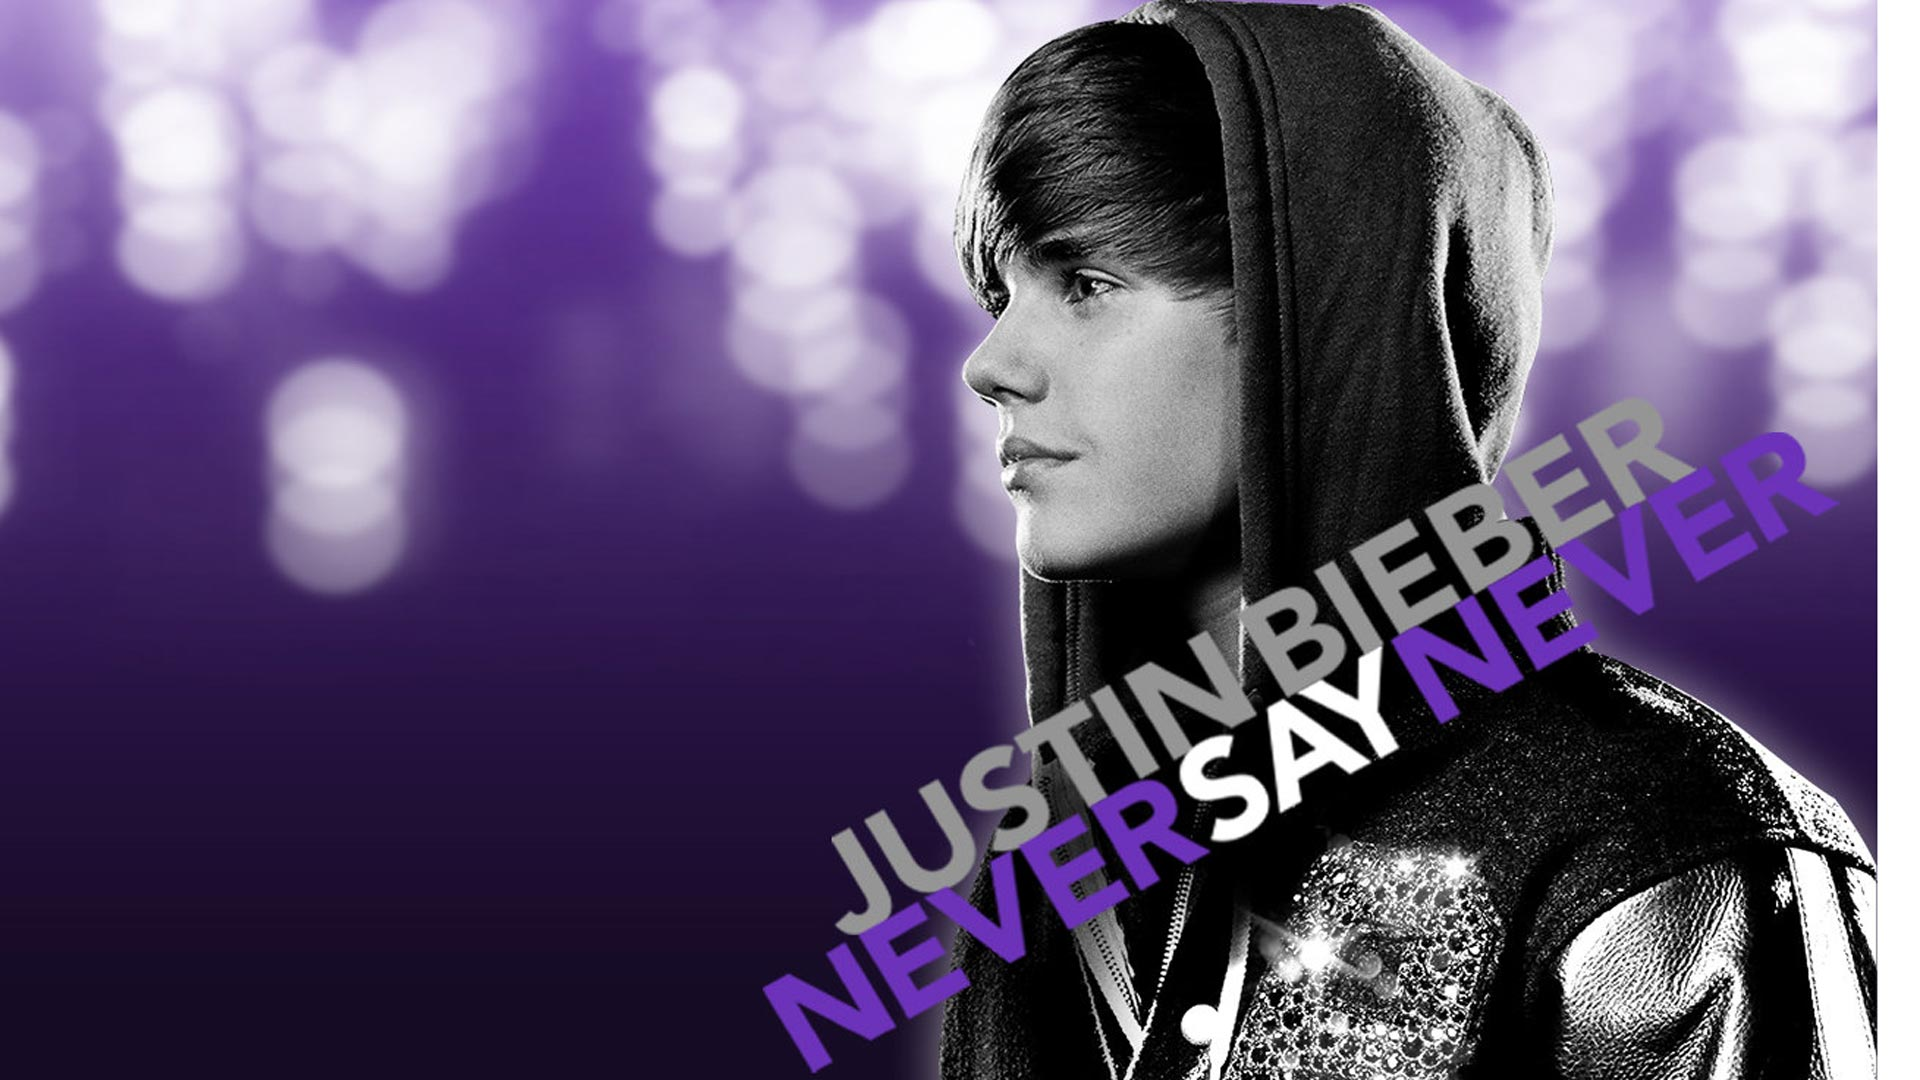 justin-bieber-never-say-never-wallpaper-1-593980